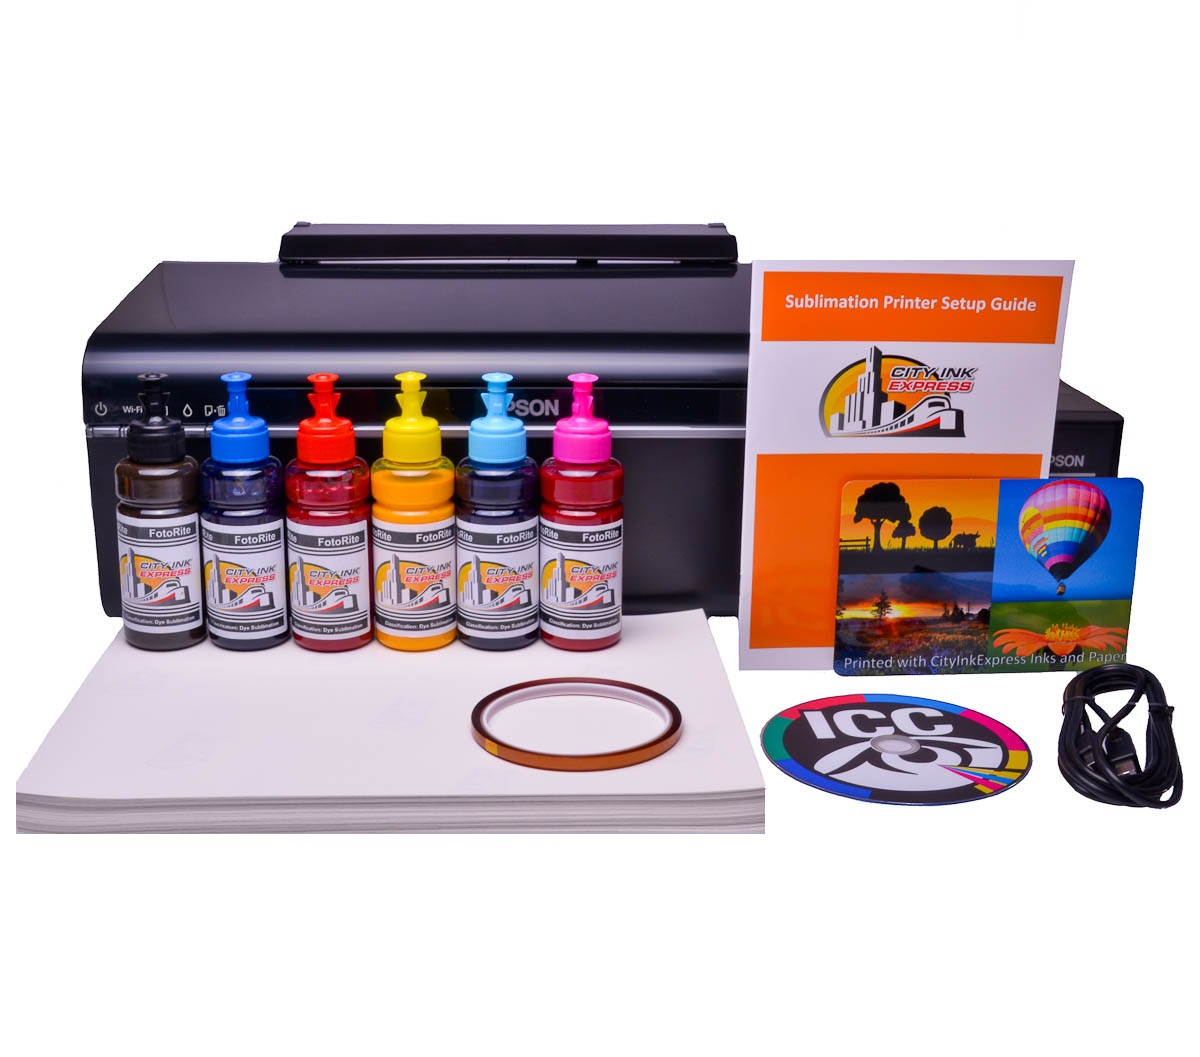 Sublimation printer package for Epson L805 printer